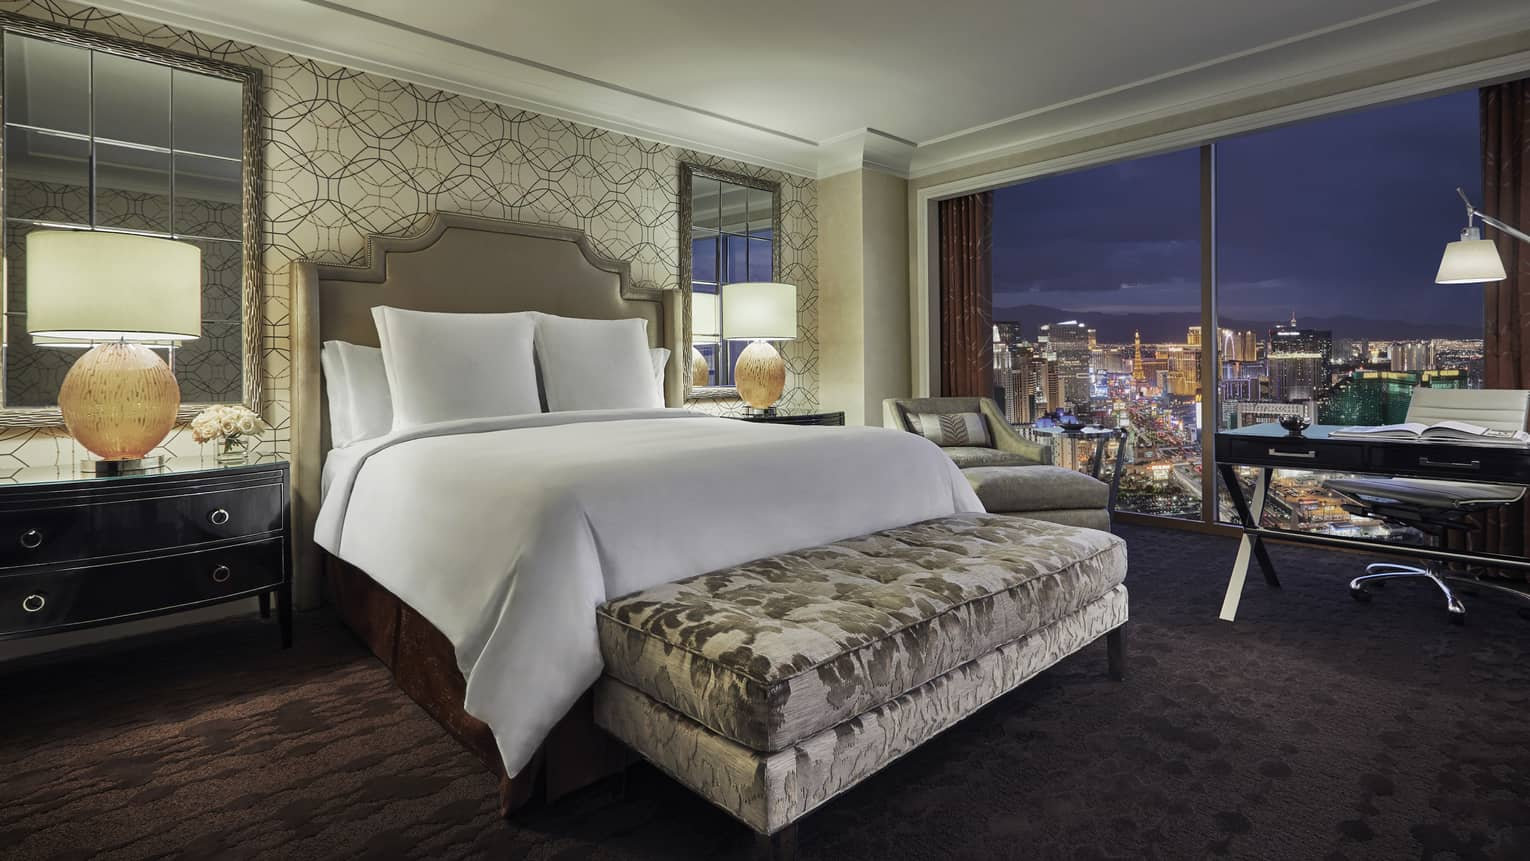 Strip-View Room bed with padded headboard, silver velvet bench, window overlooking Vegas lights at night